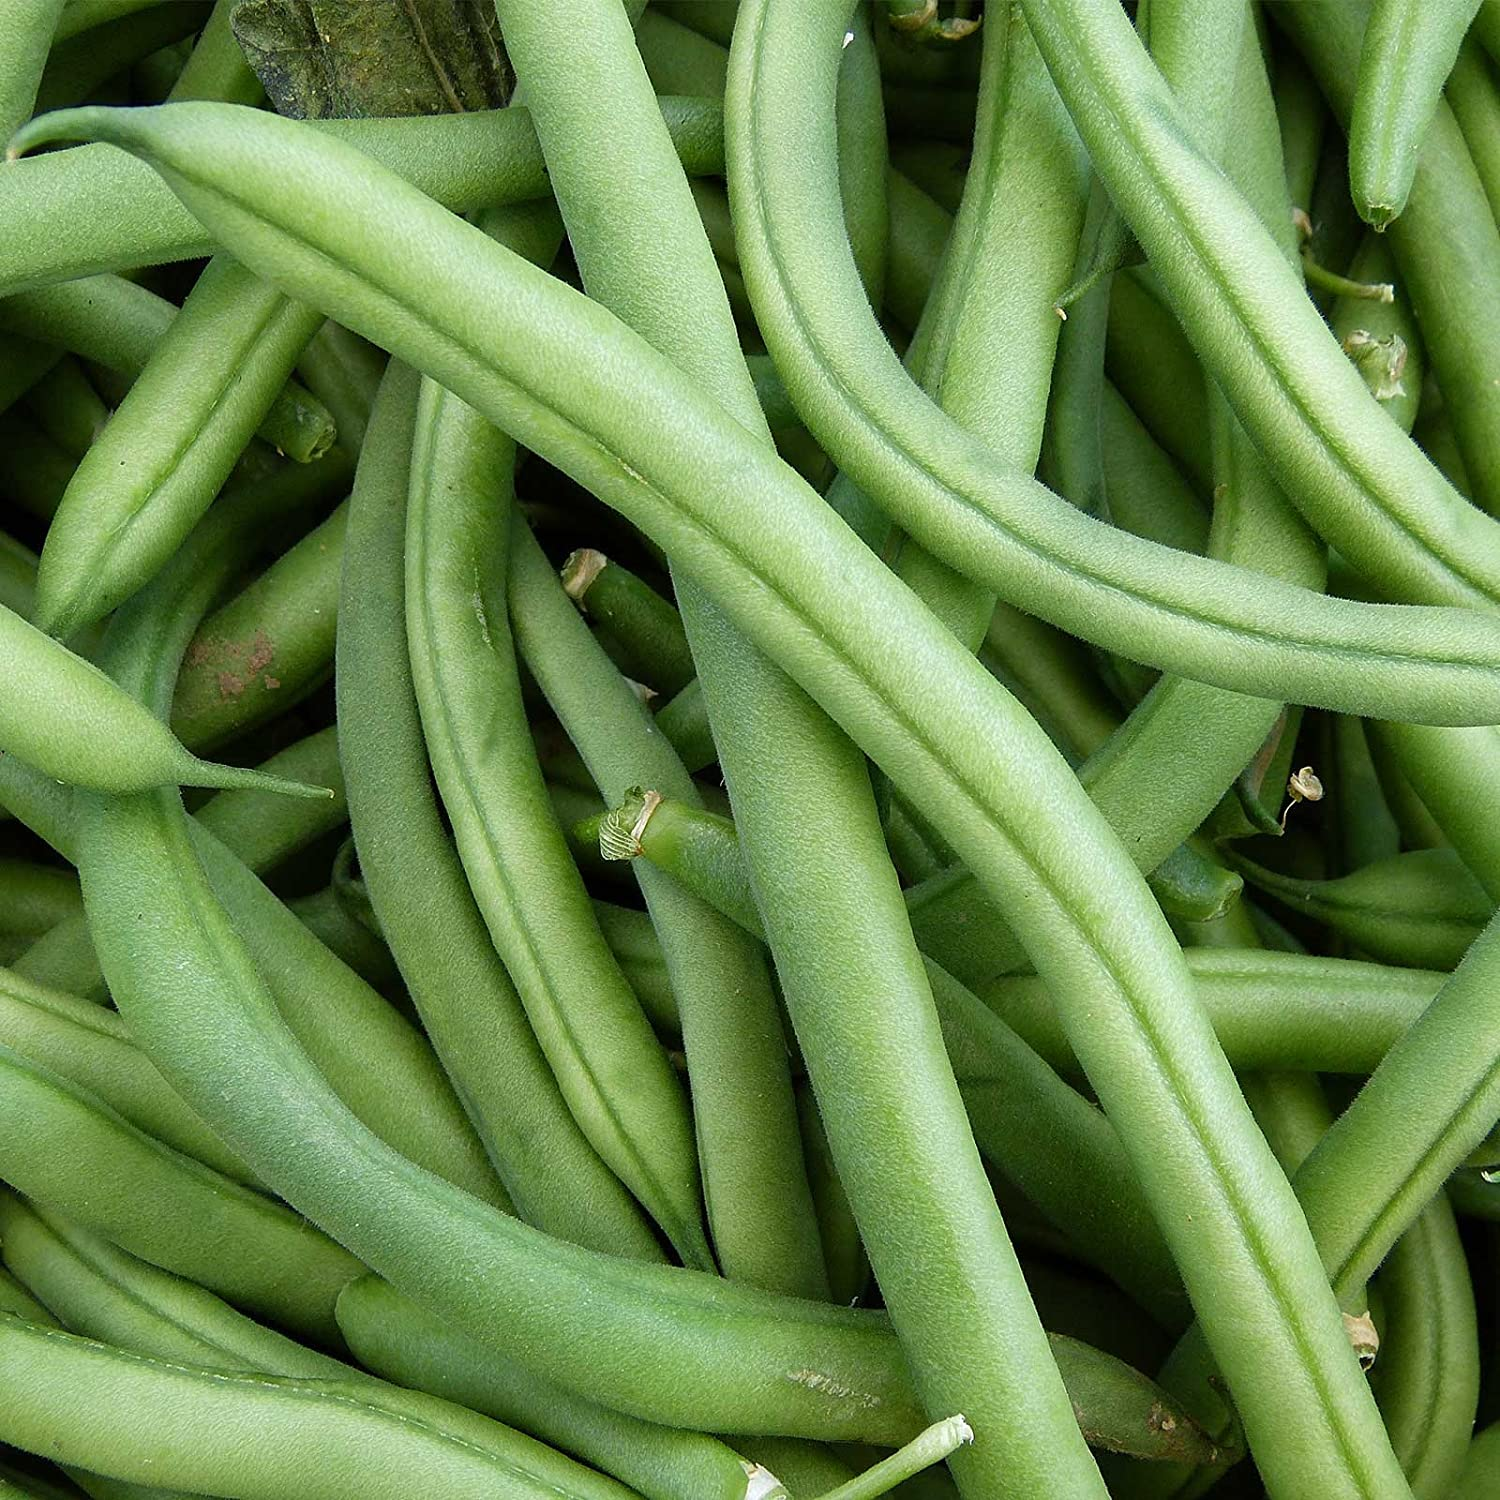 Blue Lake FM1K Pole Bean Seeds - 1 Lb - Non-GMO, Heirloom - Green Bean Vegetable Garden Seeds - Phaseolus vulgaris